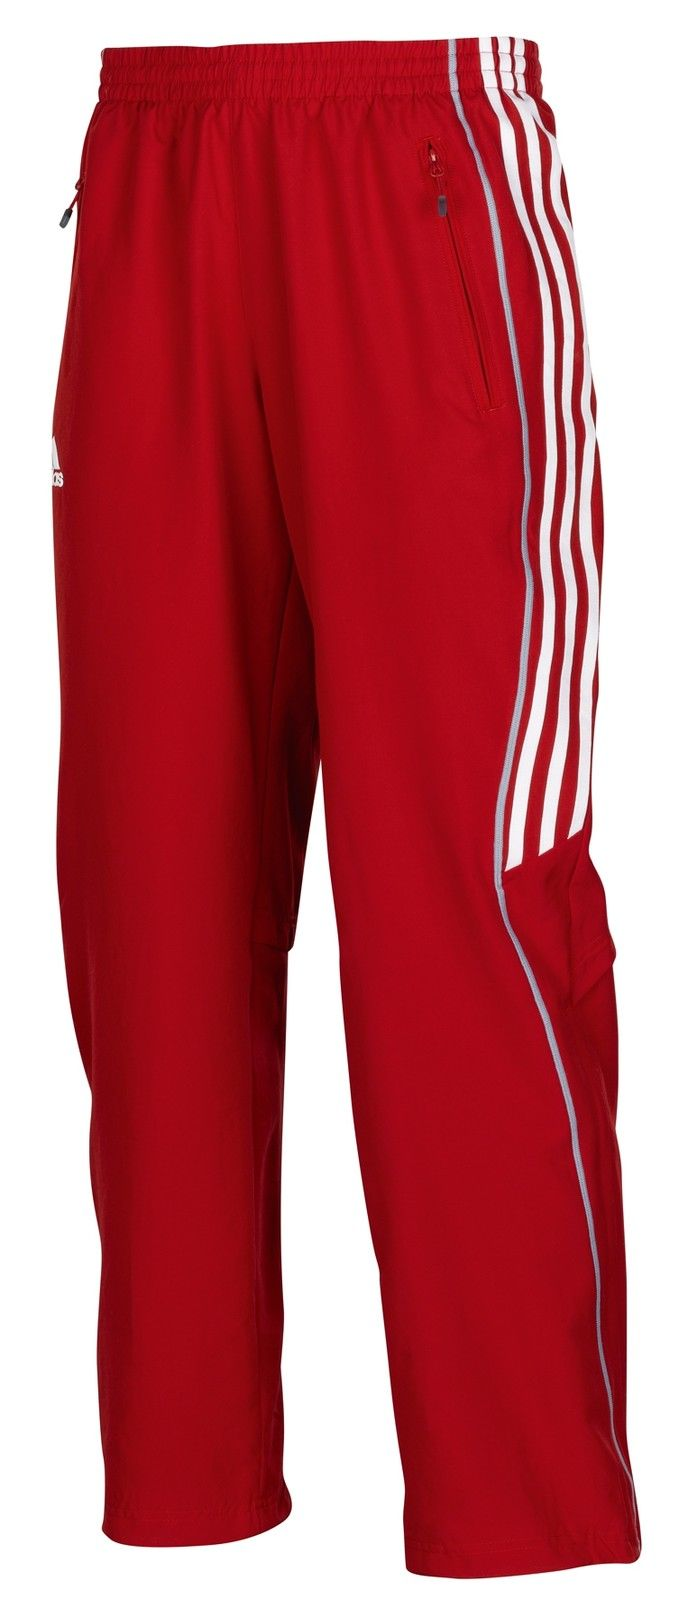 adidas t8 damen hose rot team wear hose teamware sporthose gr xl ebay. Black Bedroom Furniture Sets. Home Design Ideas